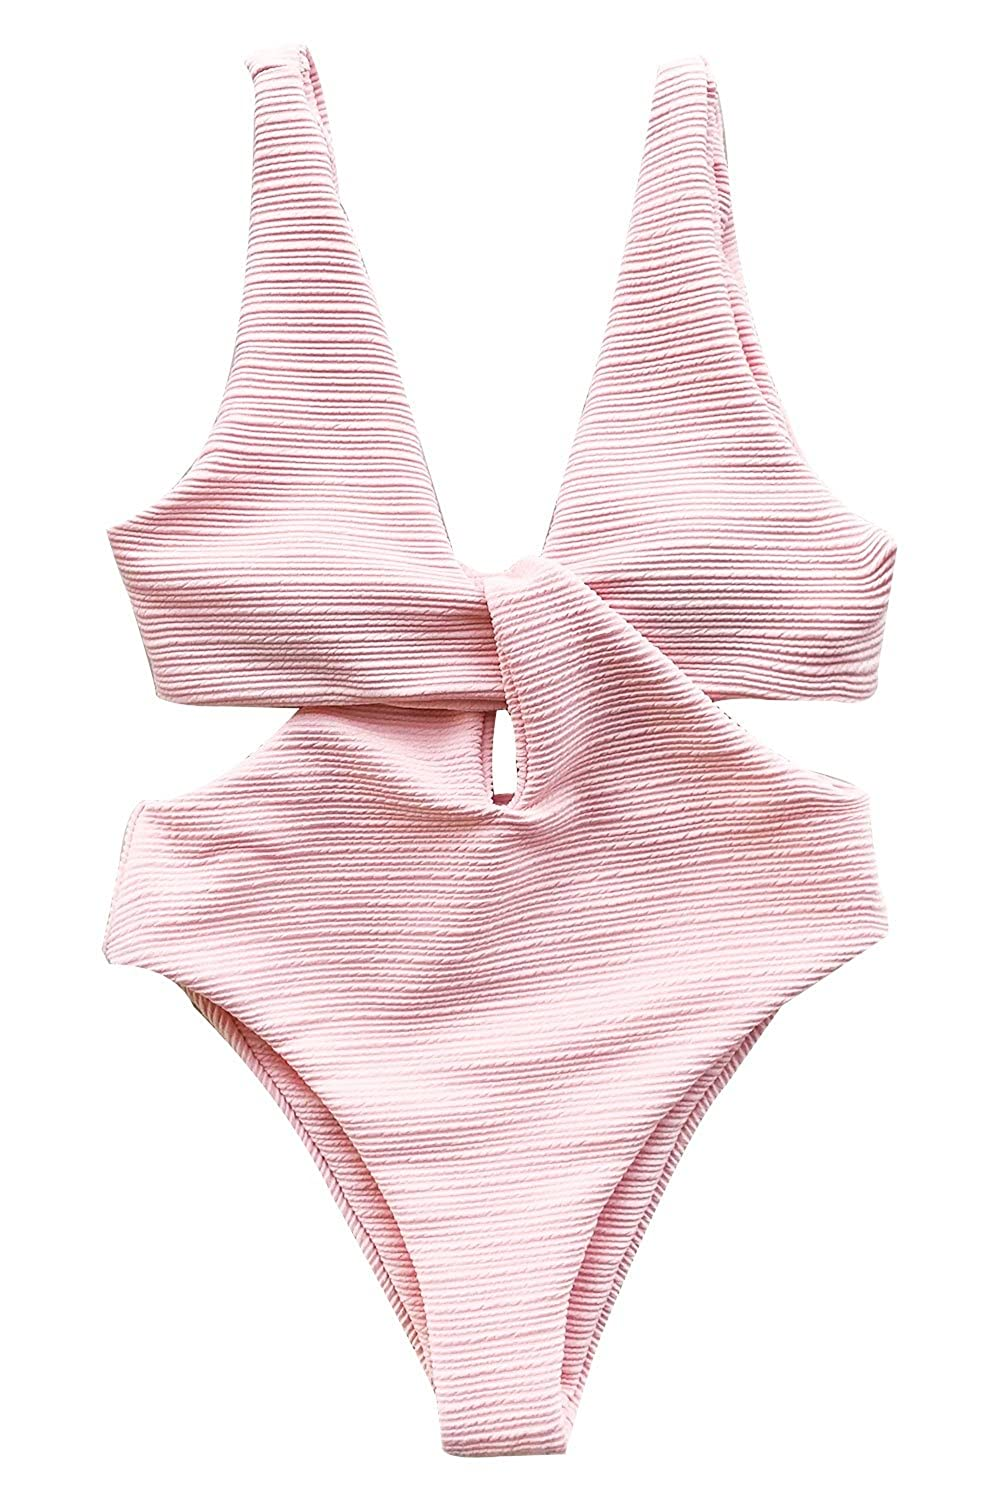 033a495781 CUPSHE Women's Solid Pink High Waisted One-Piece Swimsuit Shine for U  Swimwear at Amazon Women's Clothing store: